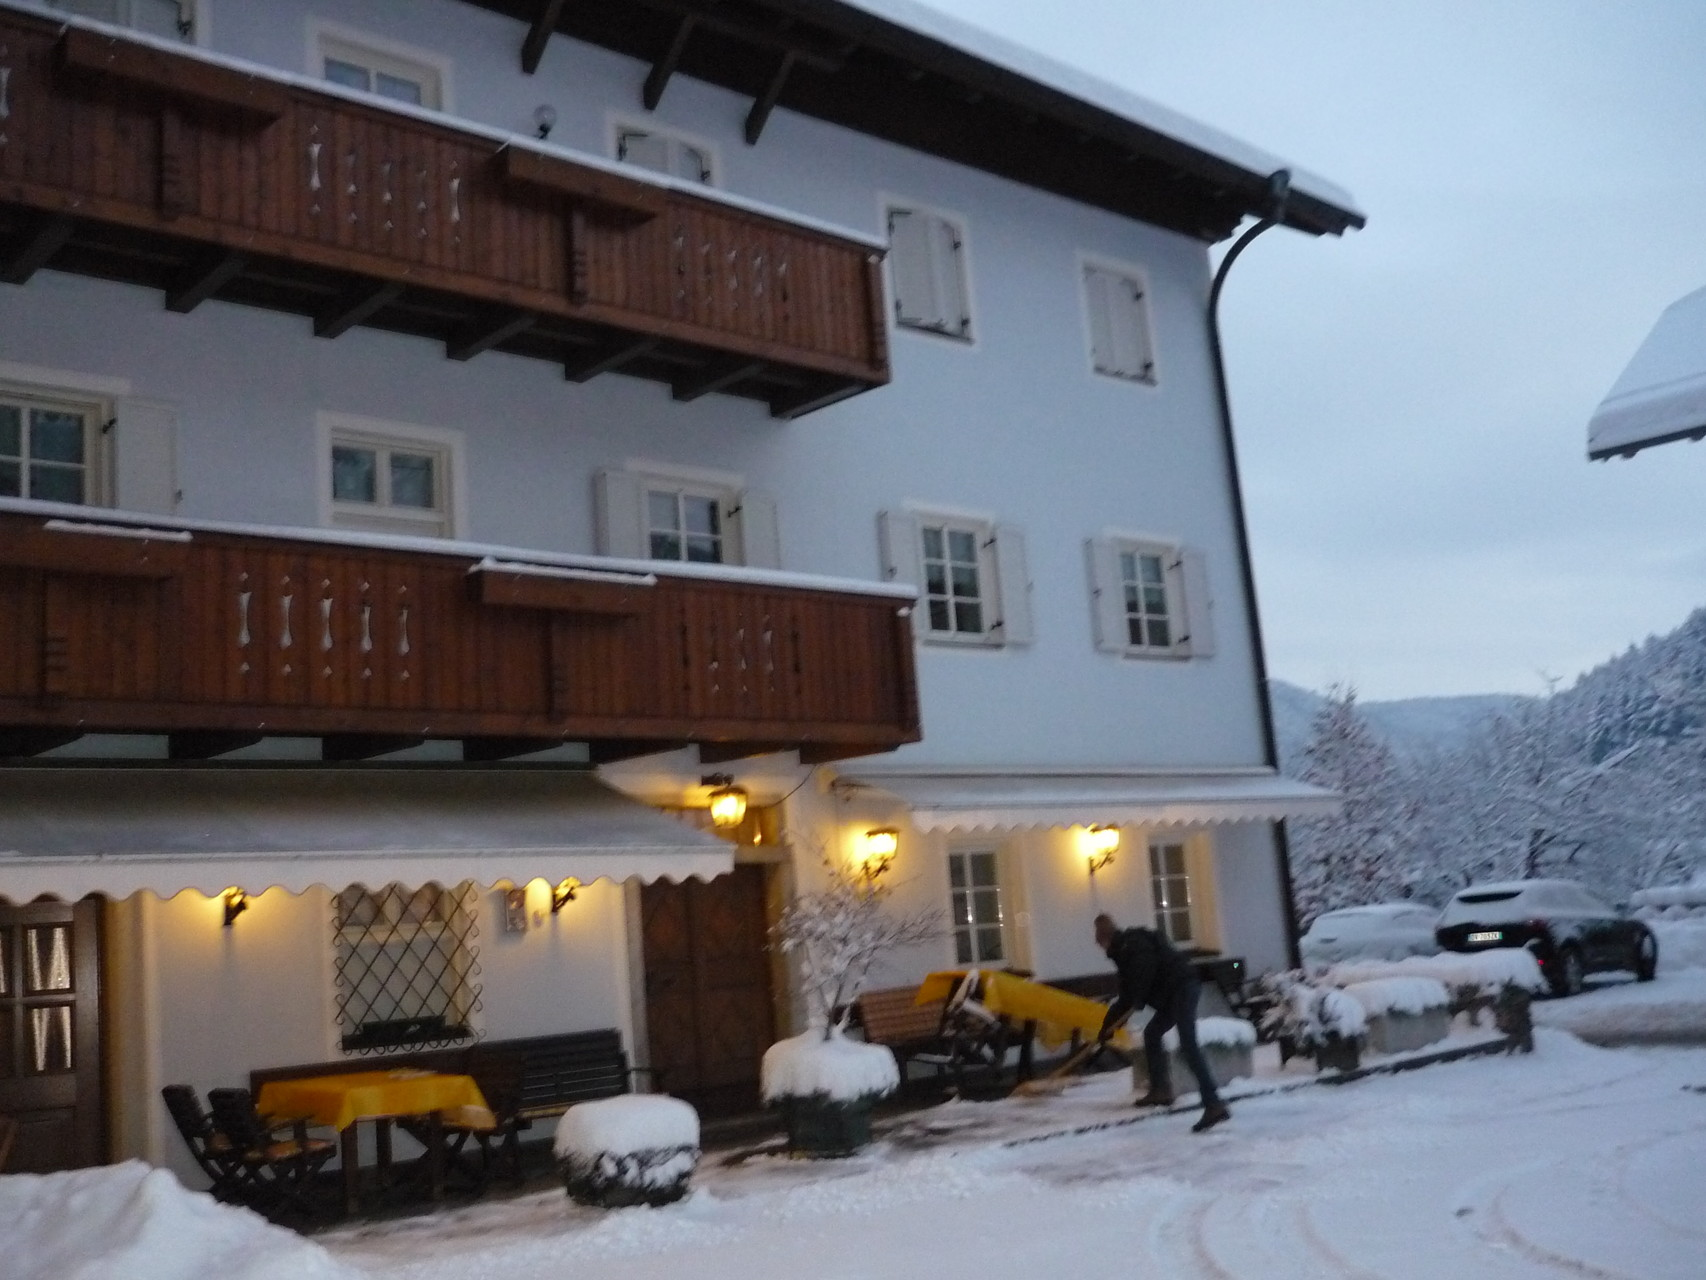 Gasthof Albergo Obermair Casteldarne Chienes Puster Valley South Tyrol Hotel